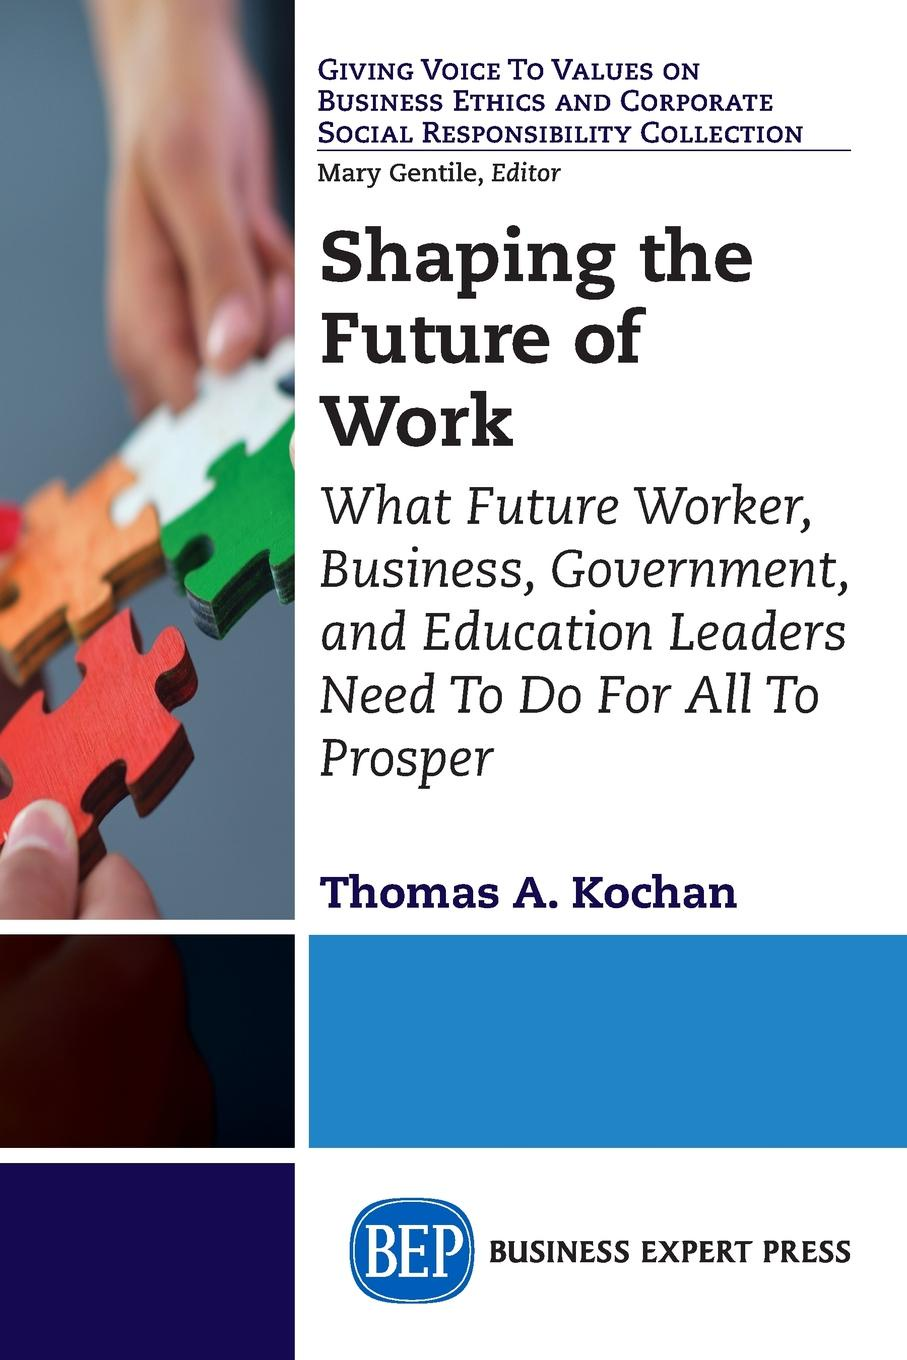 Thomas A. Kochan Shaping the Future of Work. What Future Worker, Business, Government, and Education Leaders Need To Do For All To Prosper bevan s brinkley i bajorek z cooper c 21st century workforces and workplaces the challenges and opportunities for future work practices and labour markets